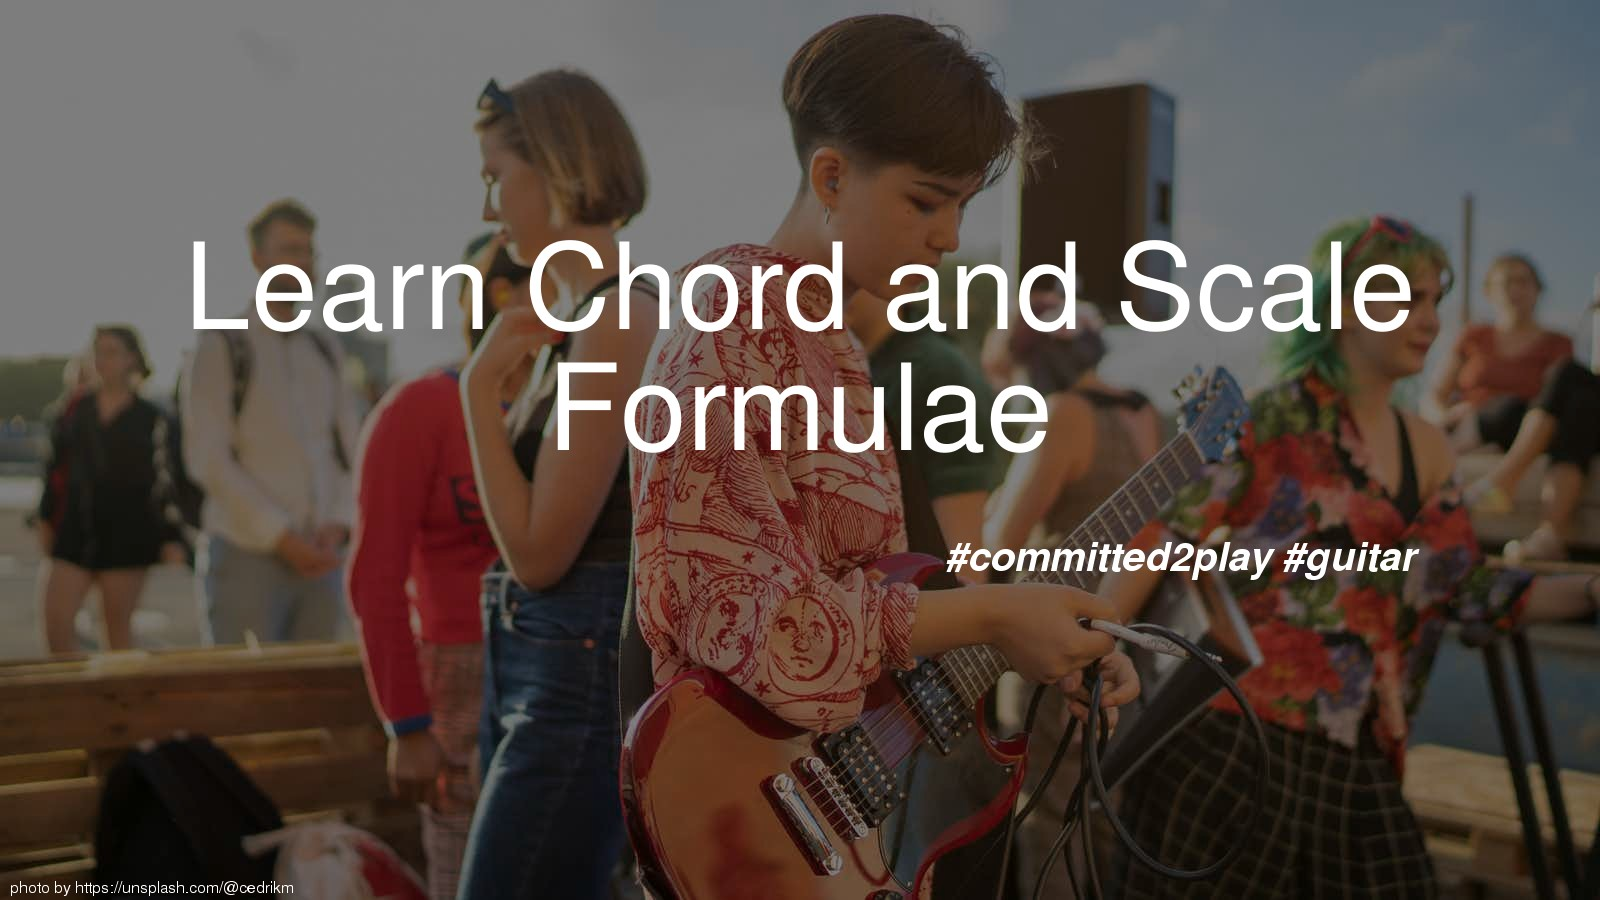 Learn Chord and Scale Formulae